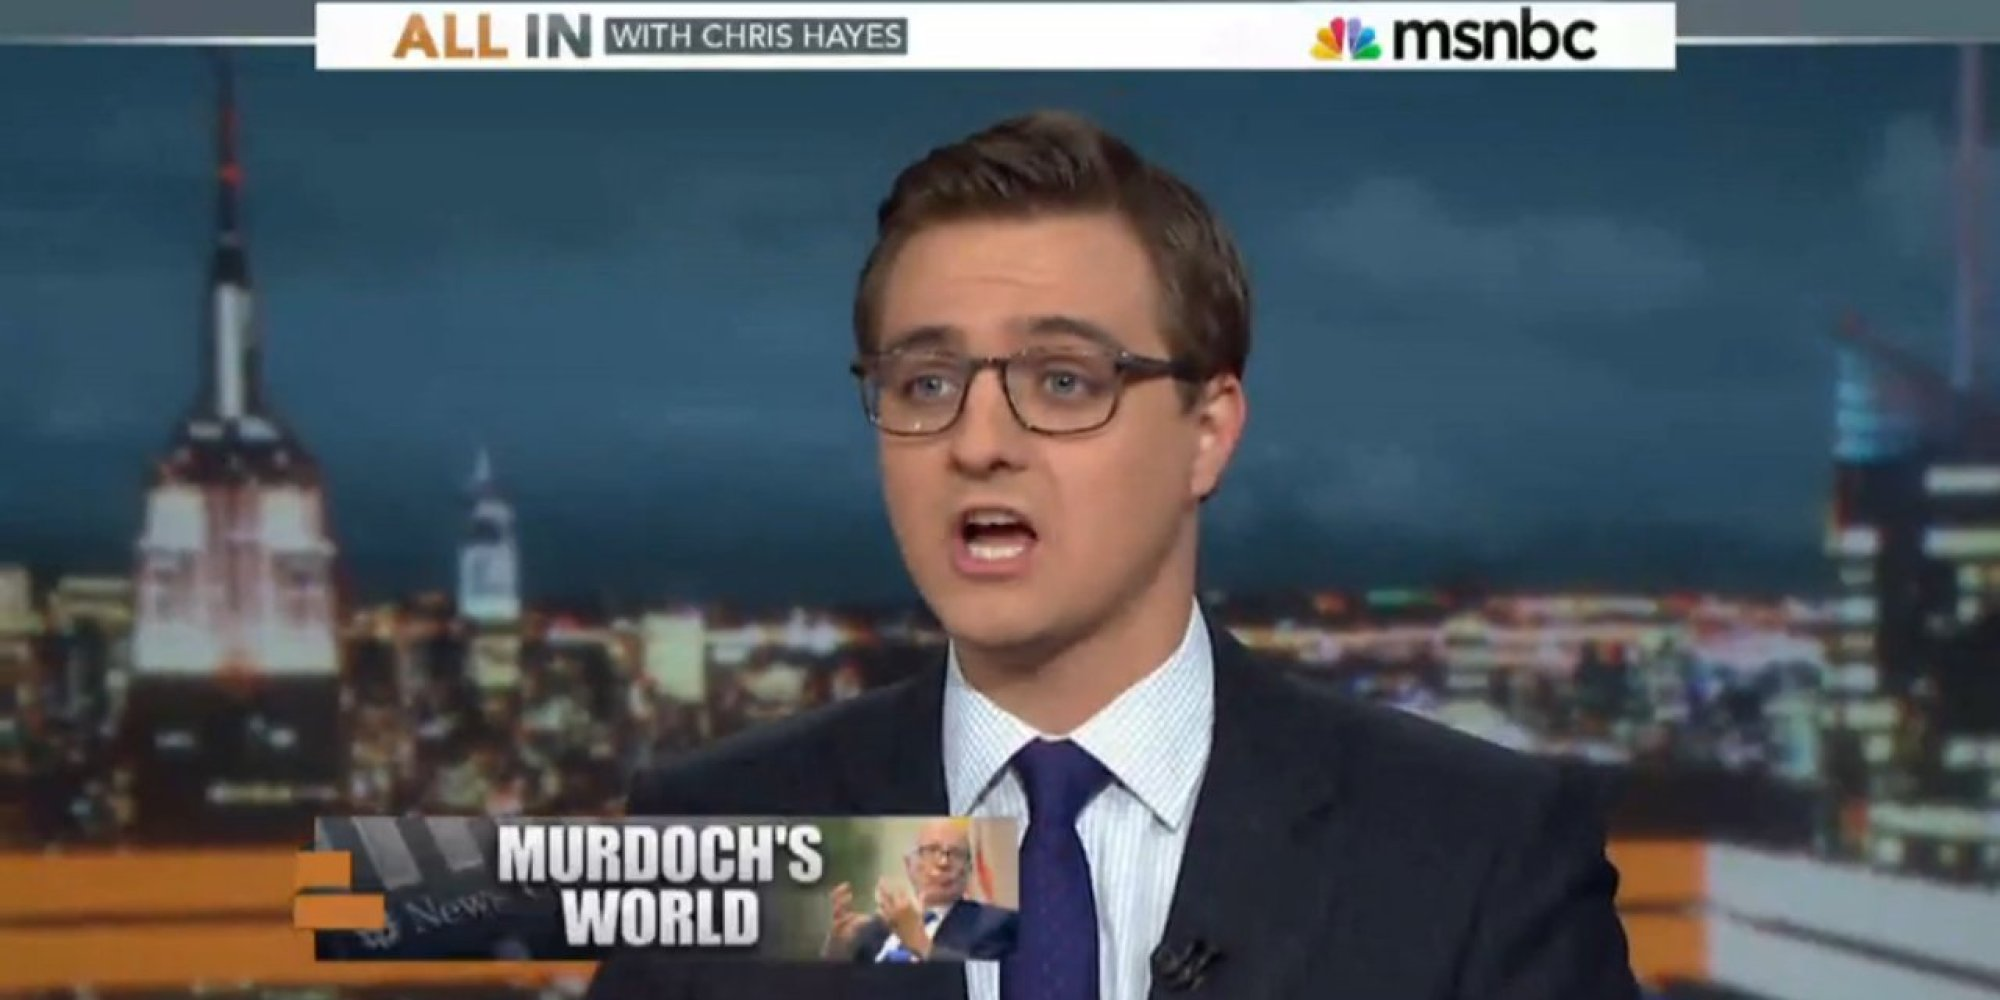 Chris Hayes On Fox News: 'They Go Nuclear On Everything ...